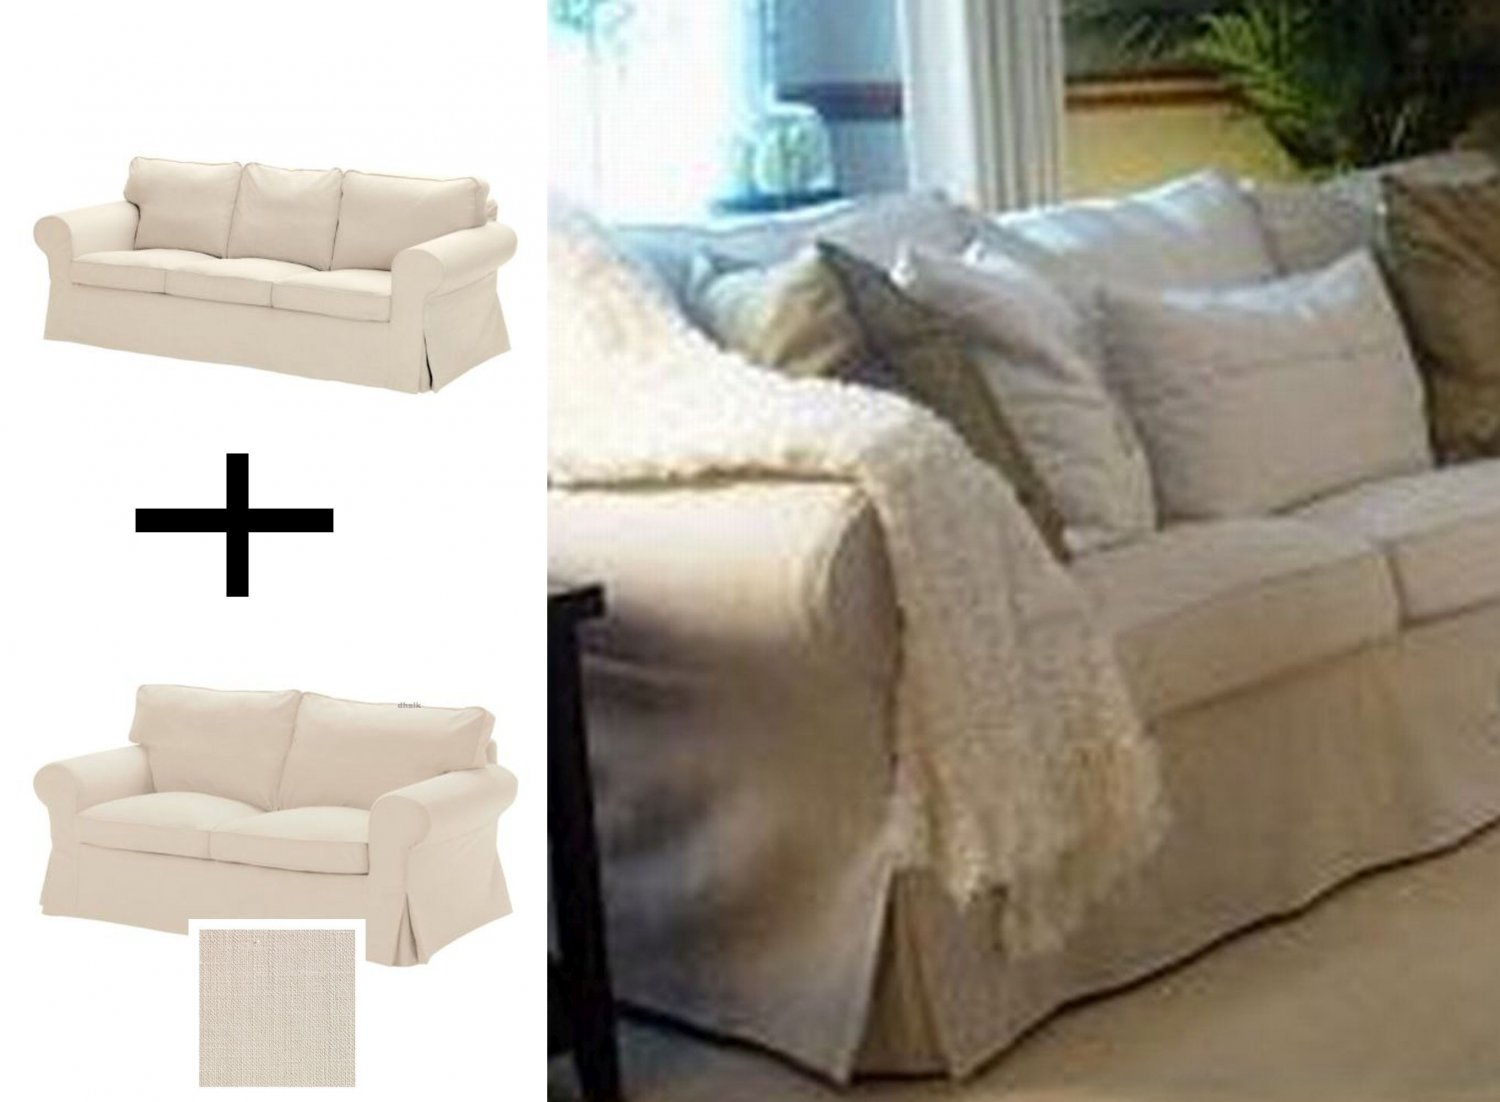 Ikea Ektorp 3 Seat Sofa And 2 Seat Loveseat Sofa Slipcover Set Covers Svanby Beige Discontinued